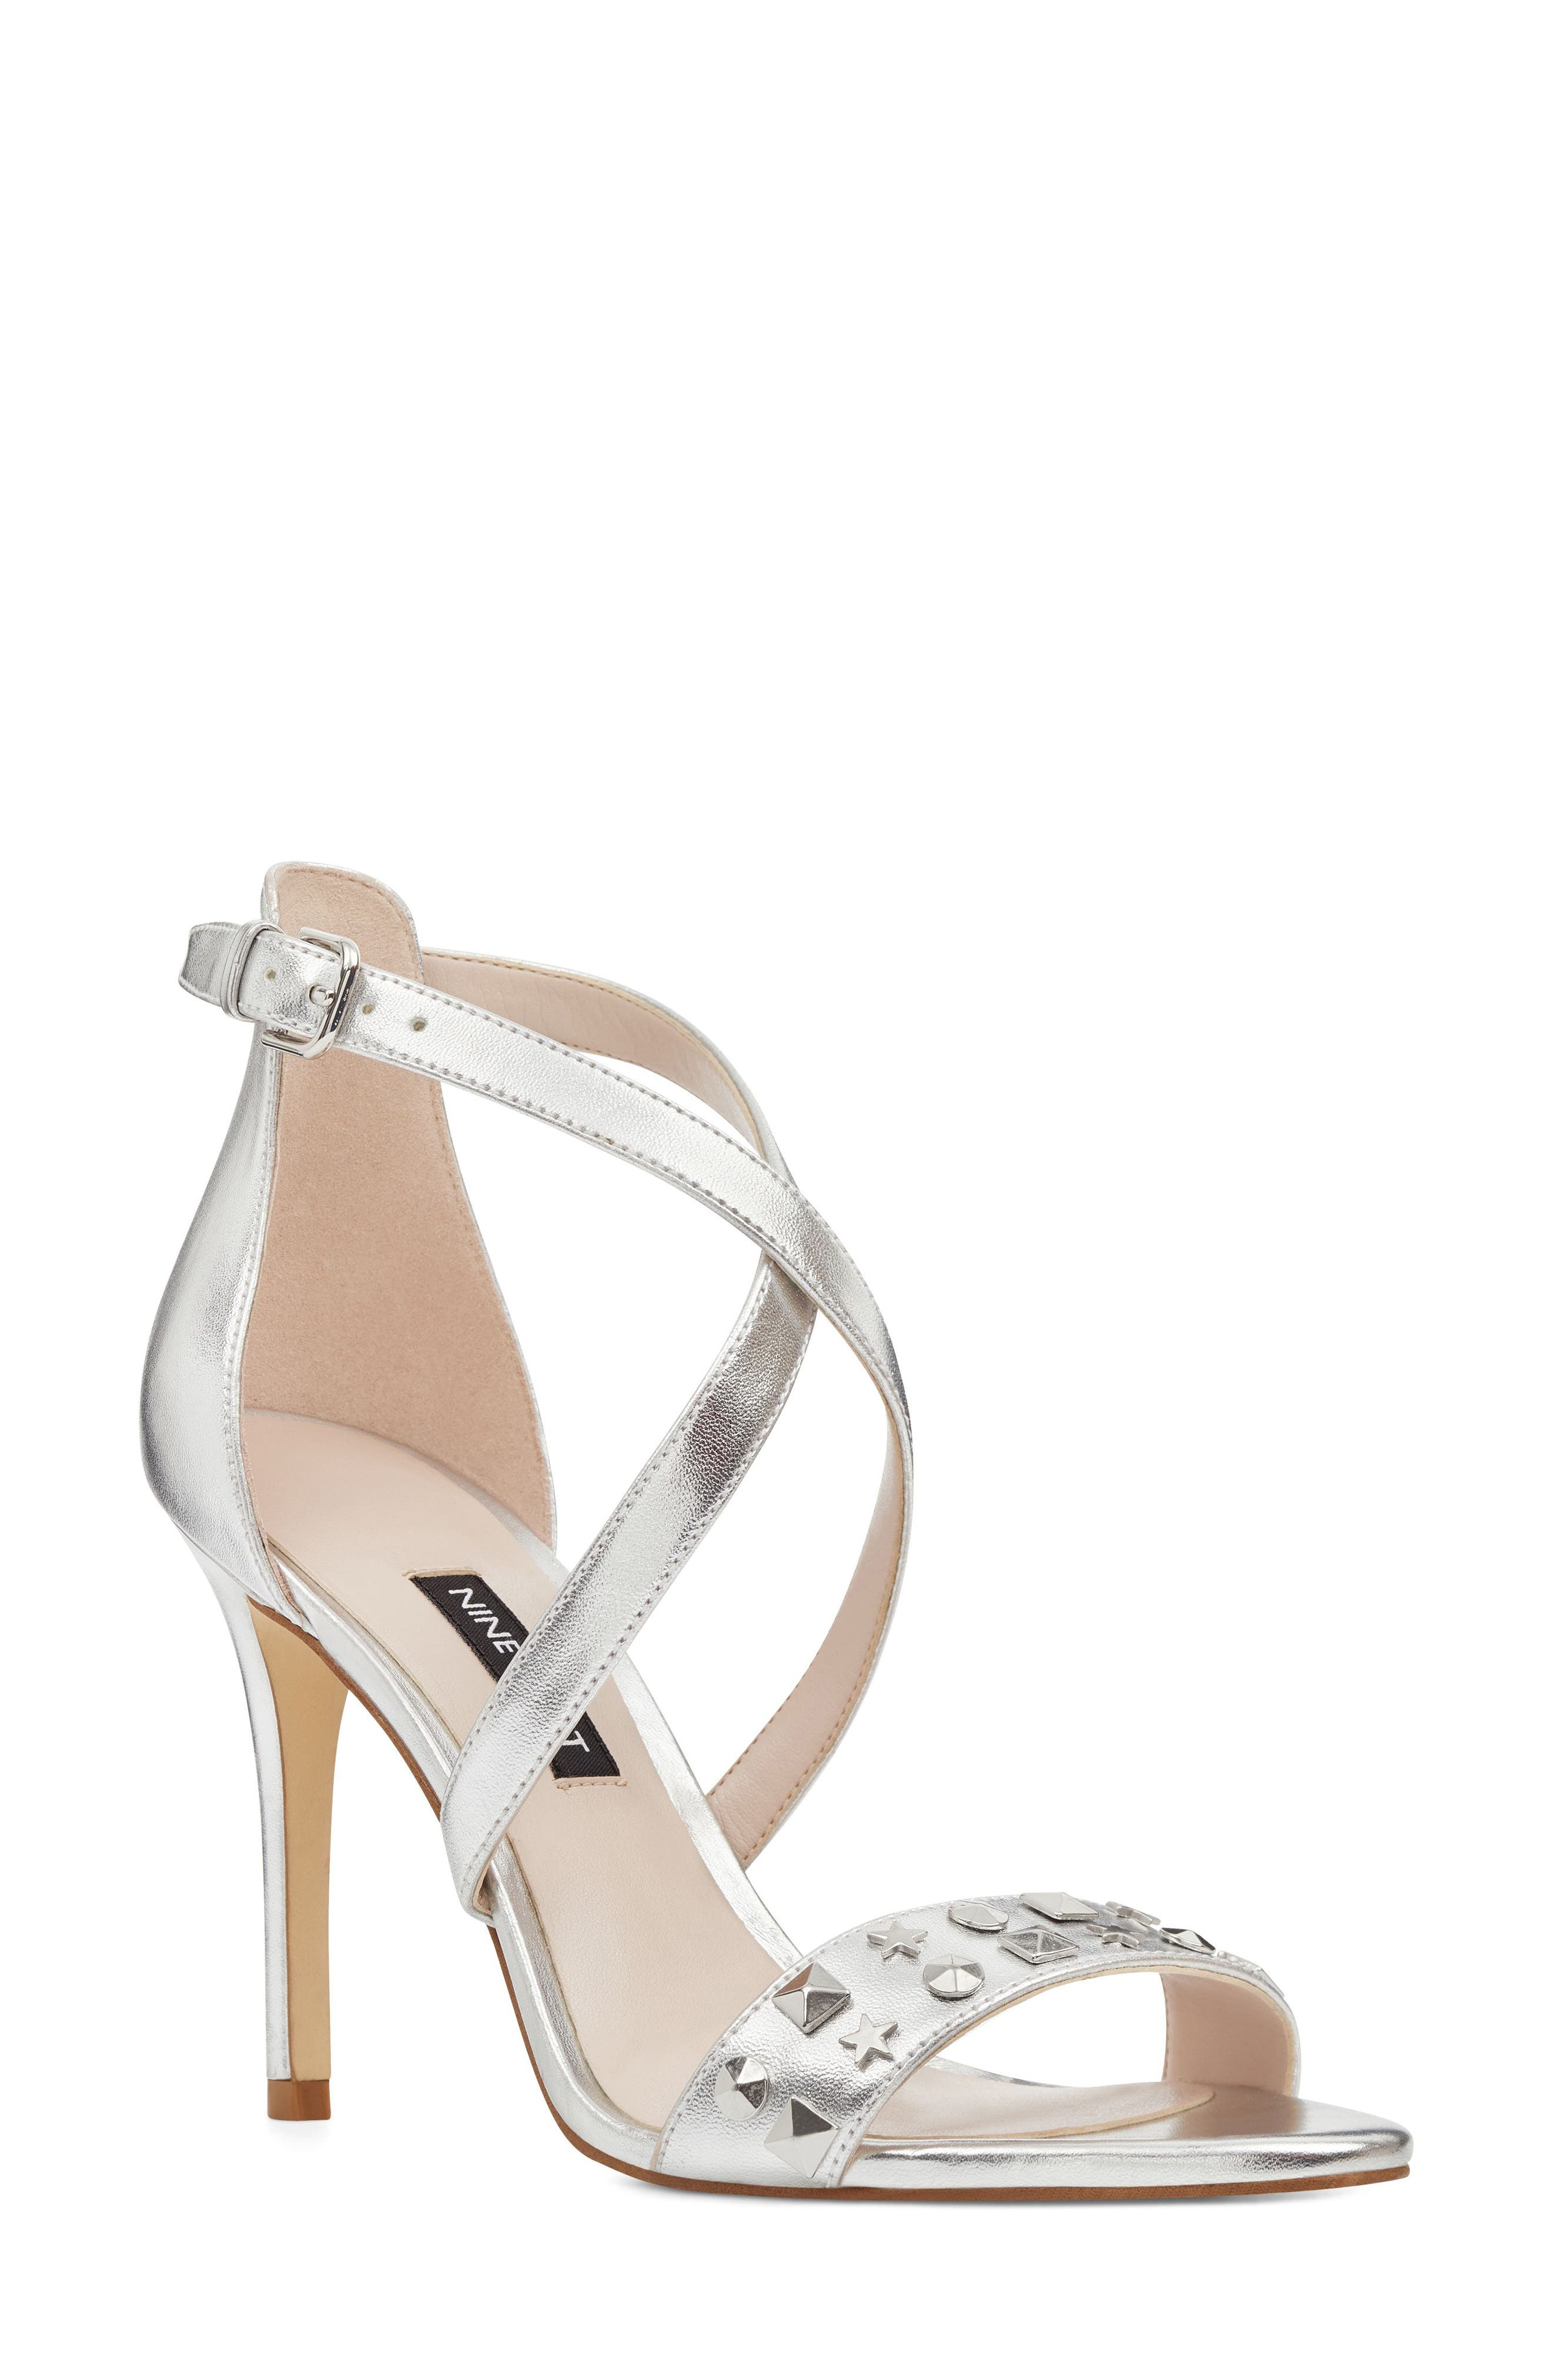 Maziany Studded Sandal,                         Main,                         color, Silver Faux Leather